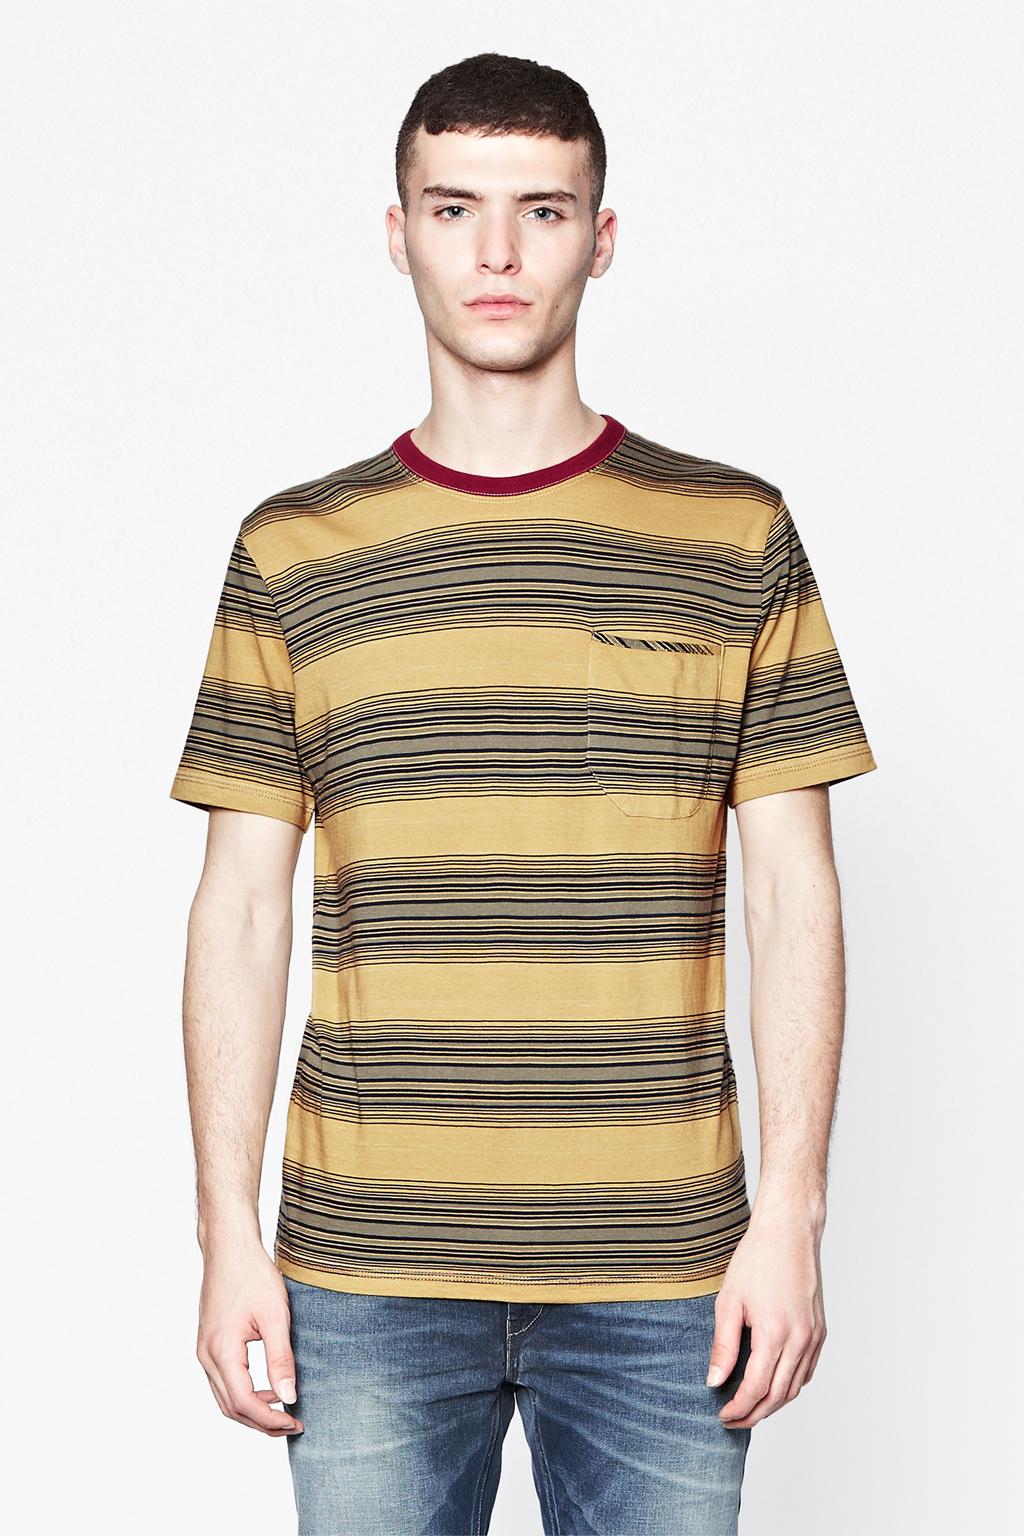 french connection loose weave striped t shirt in yellow. Black Bedroom Furniture Sets. Home Design Ideas